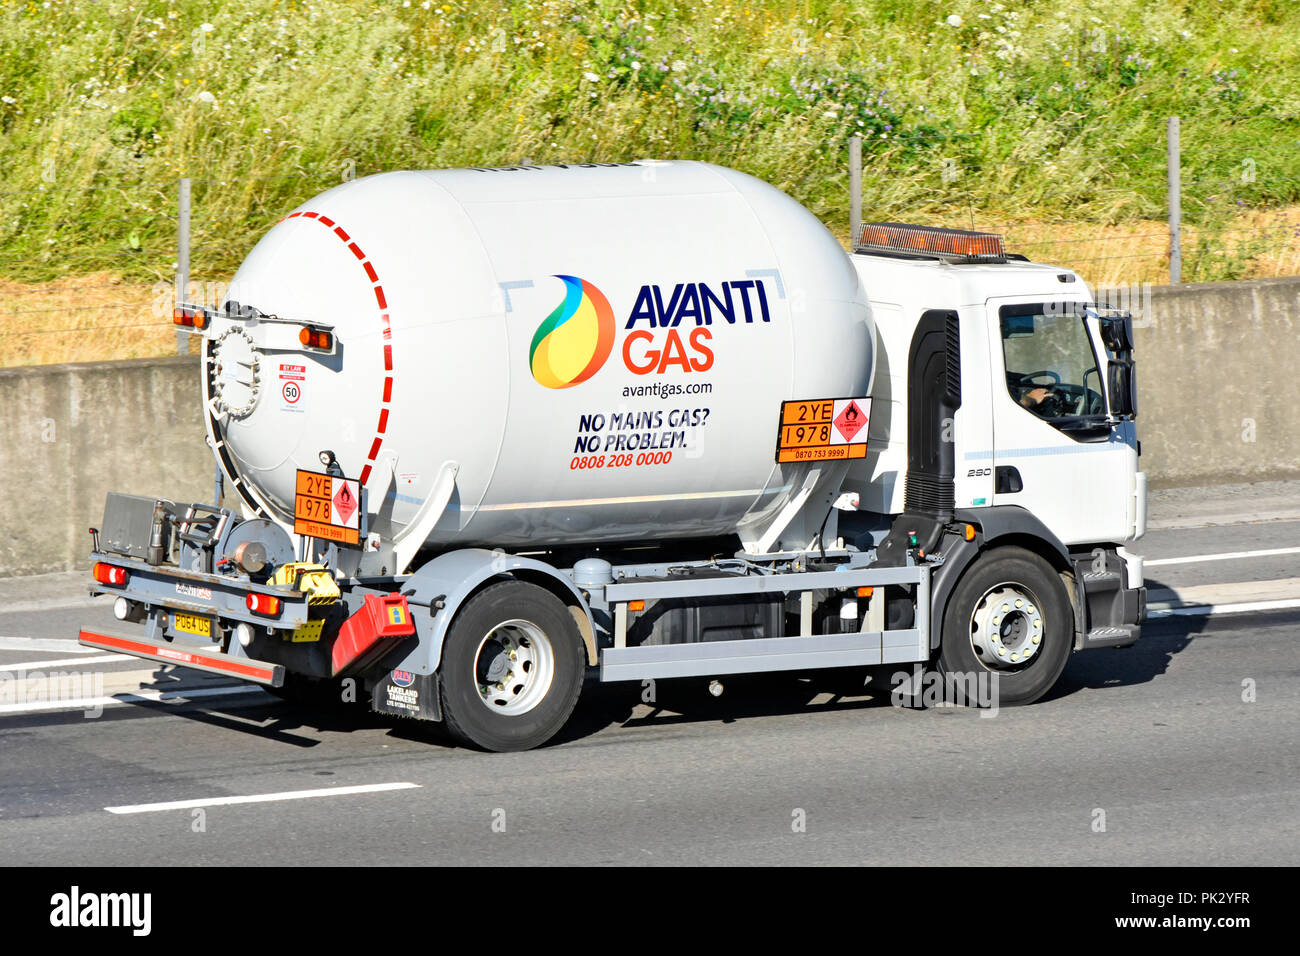 Short wheelbase Avanti Gas LPG logo supply chain tanker lorry truck transport warning sign flammable & advert for property without main gas England UK - Stock Image